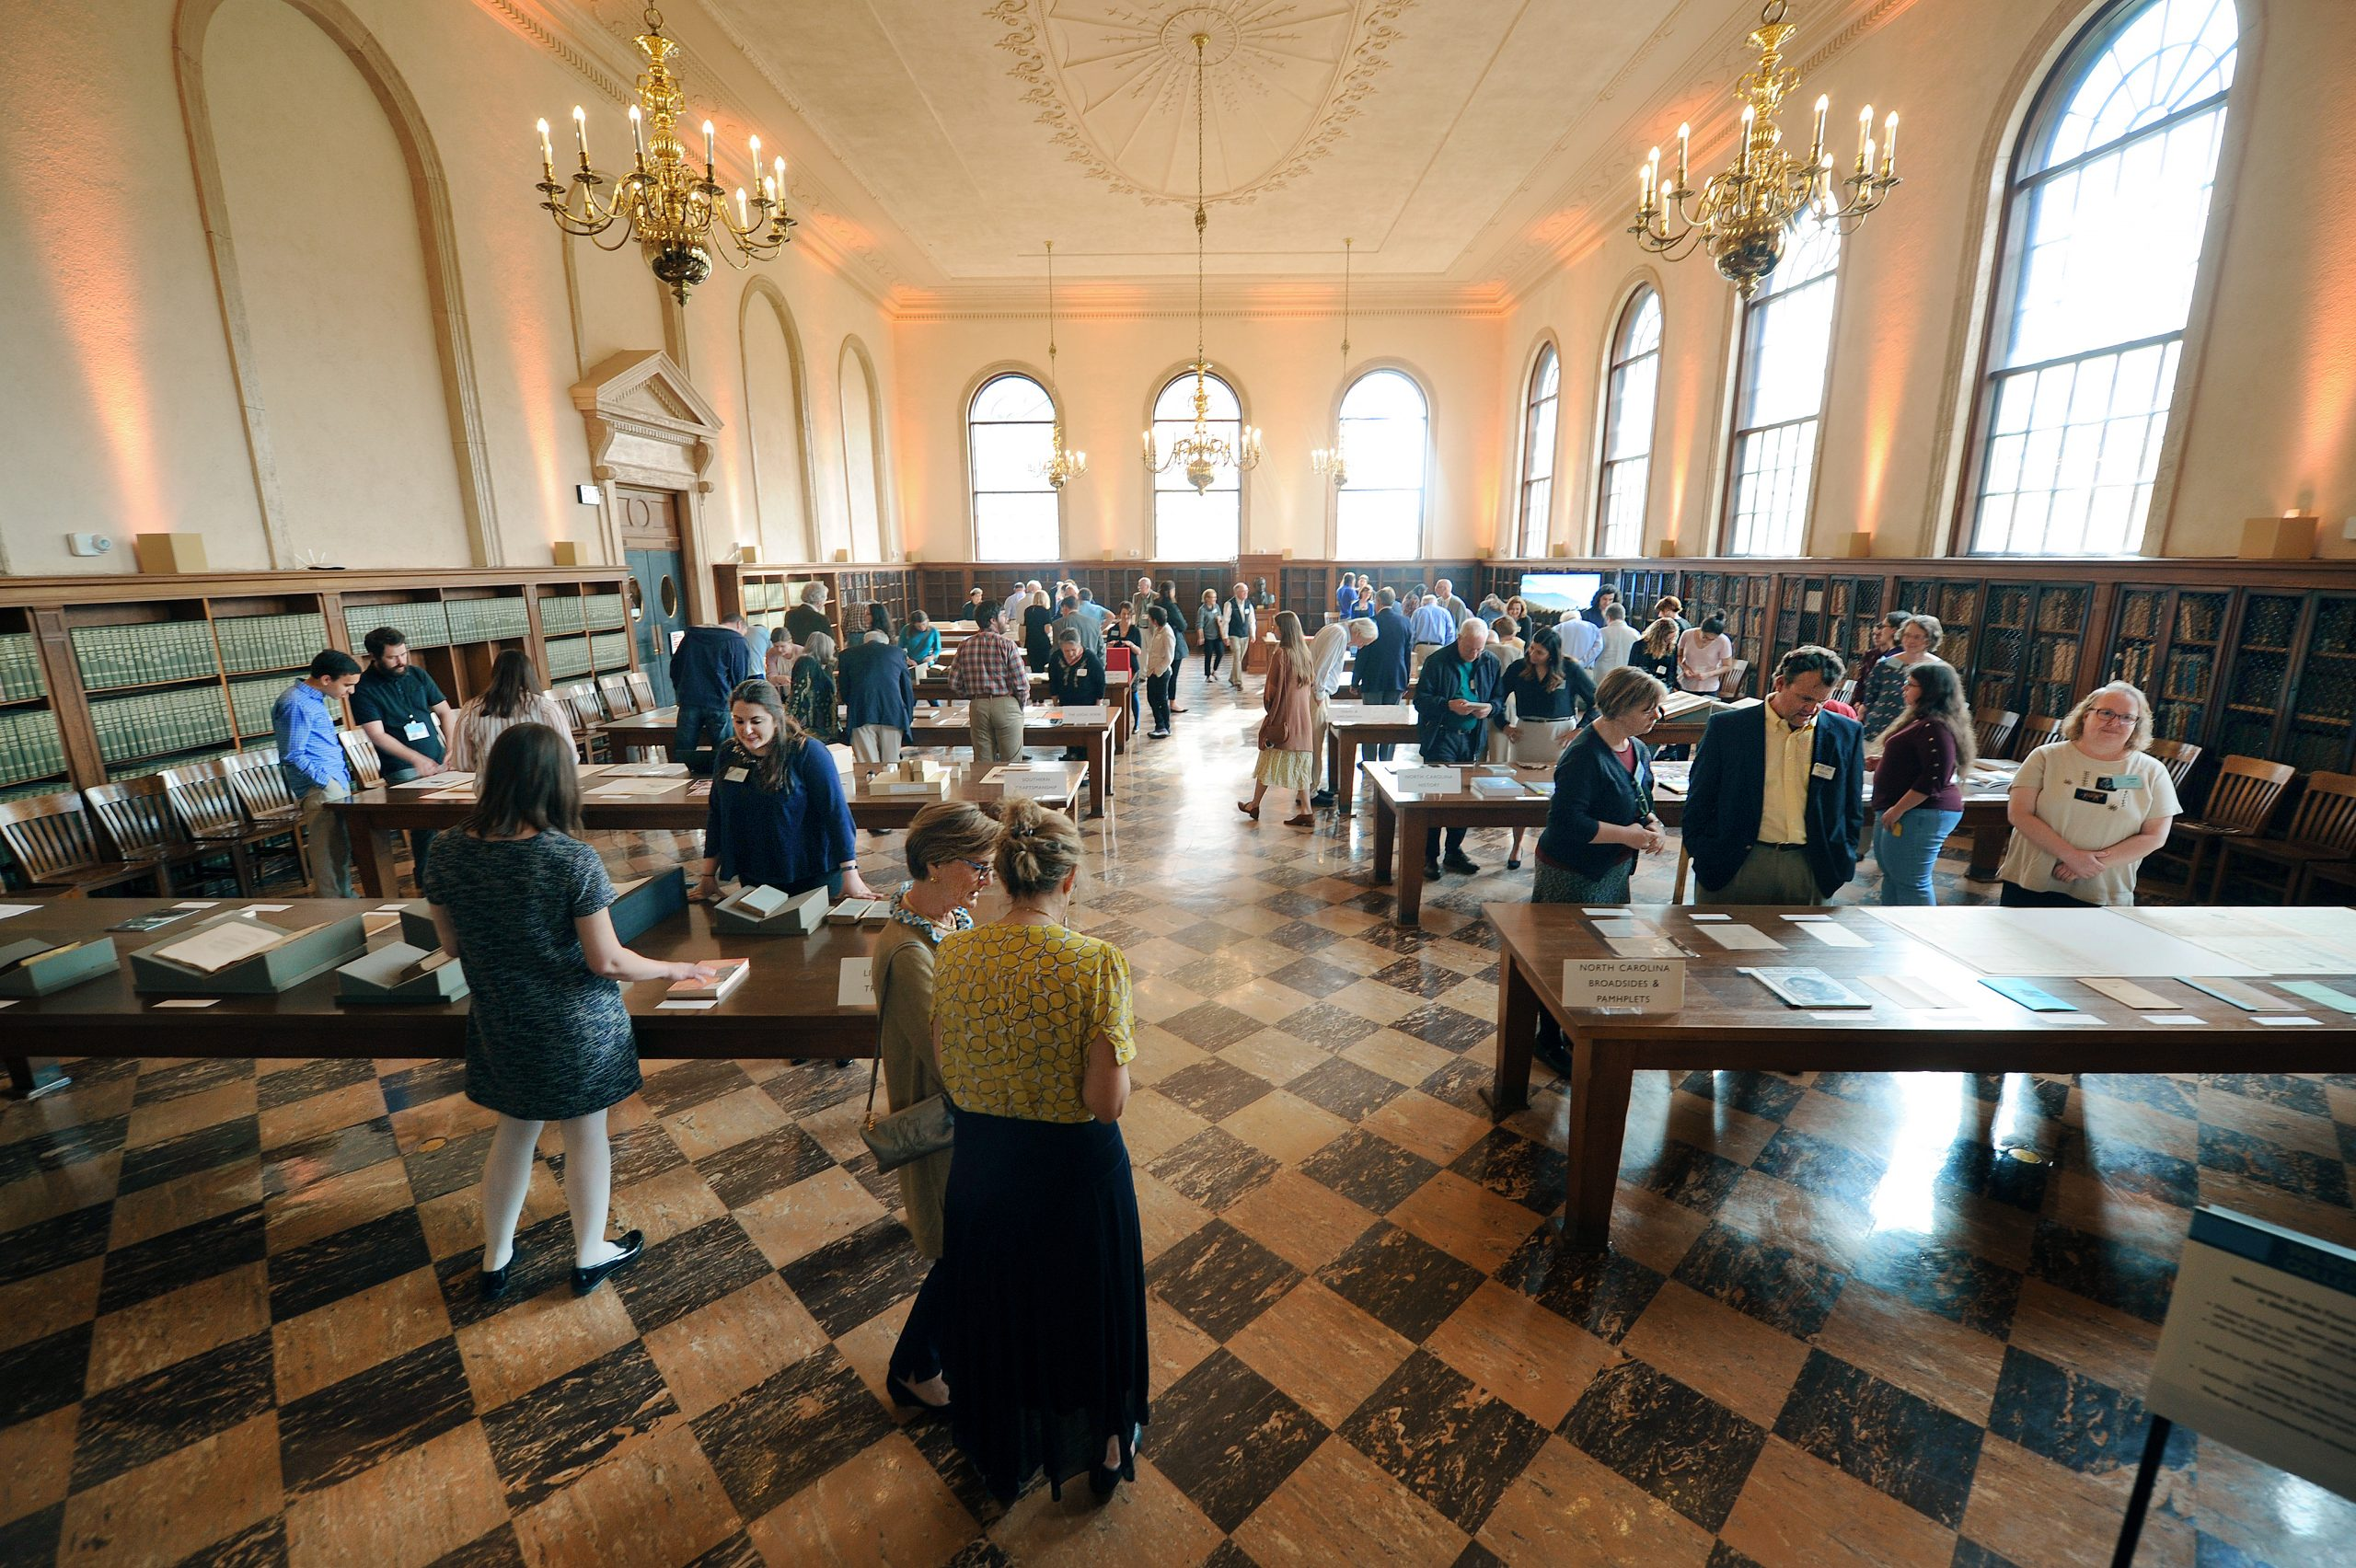 Fearrington Reading Room full of people